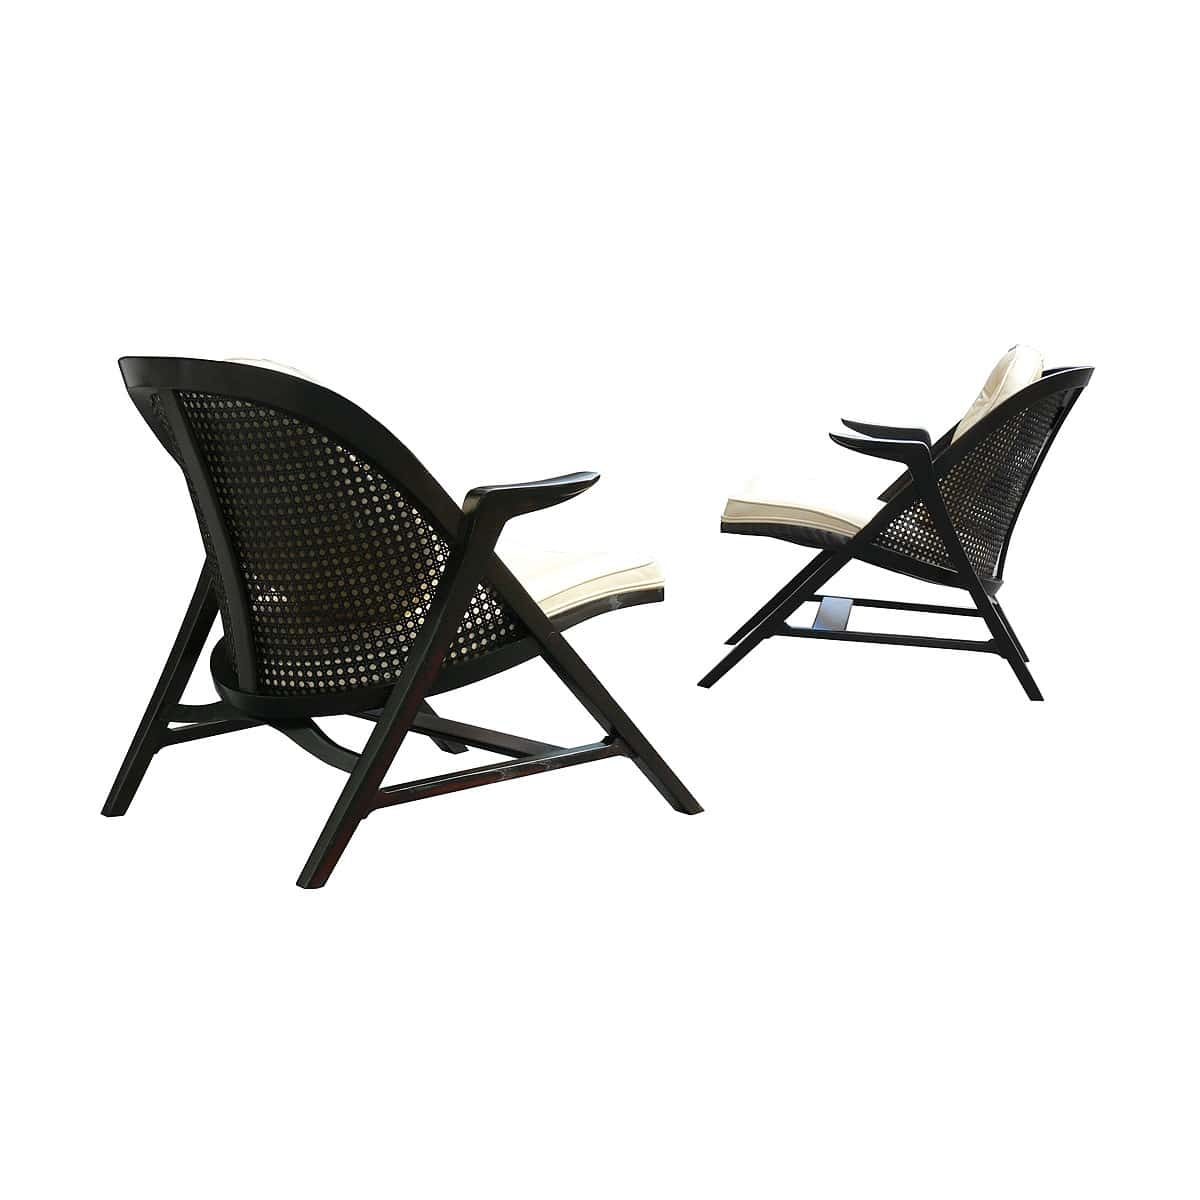 Edward Wormley Dunbar Janus Lounge Chairs